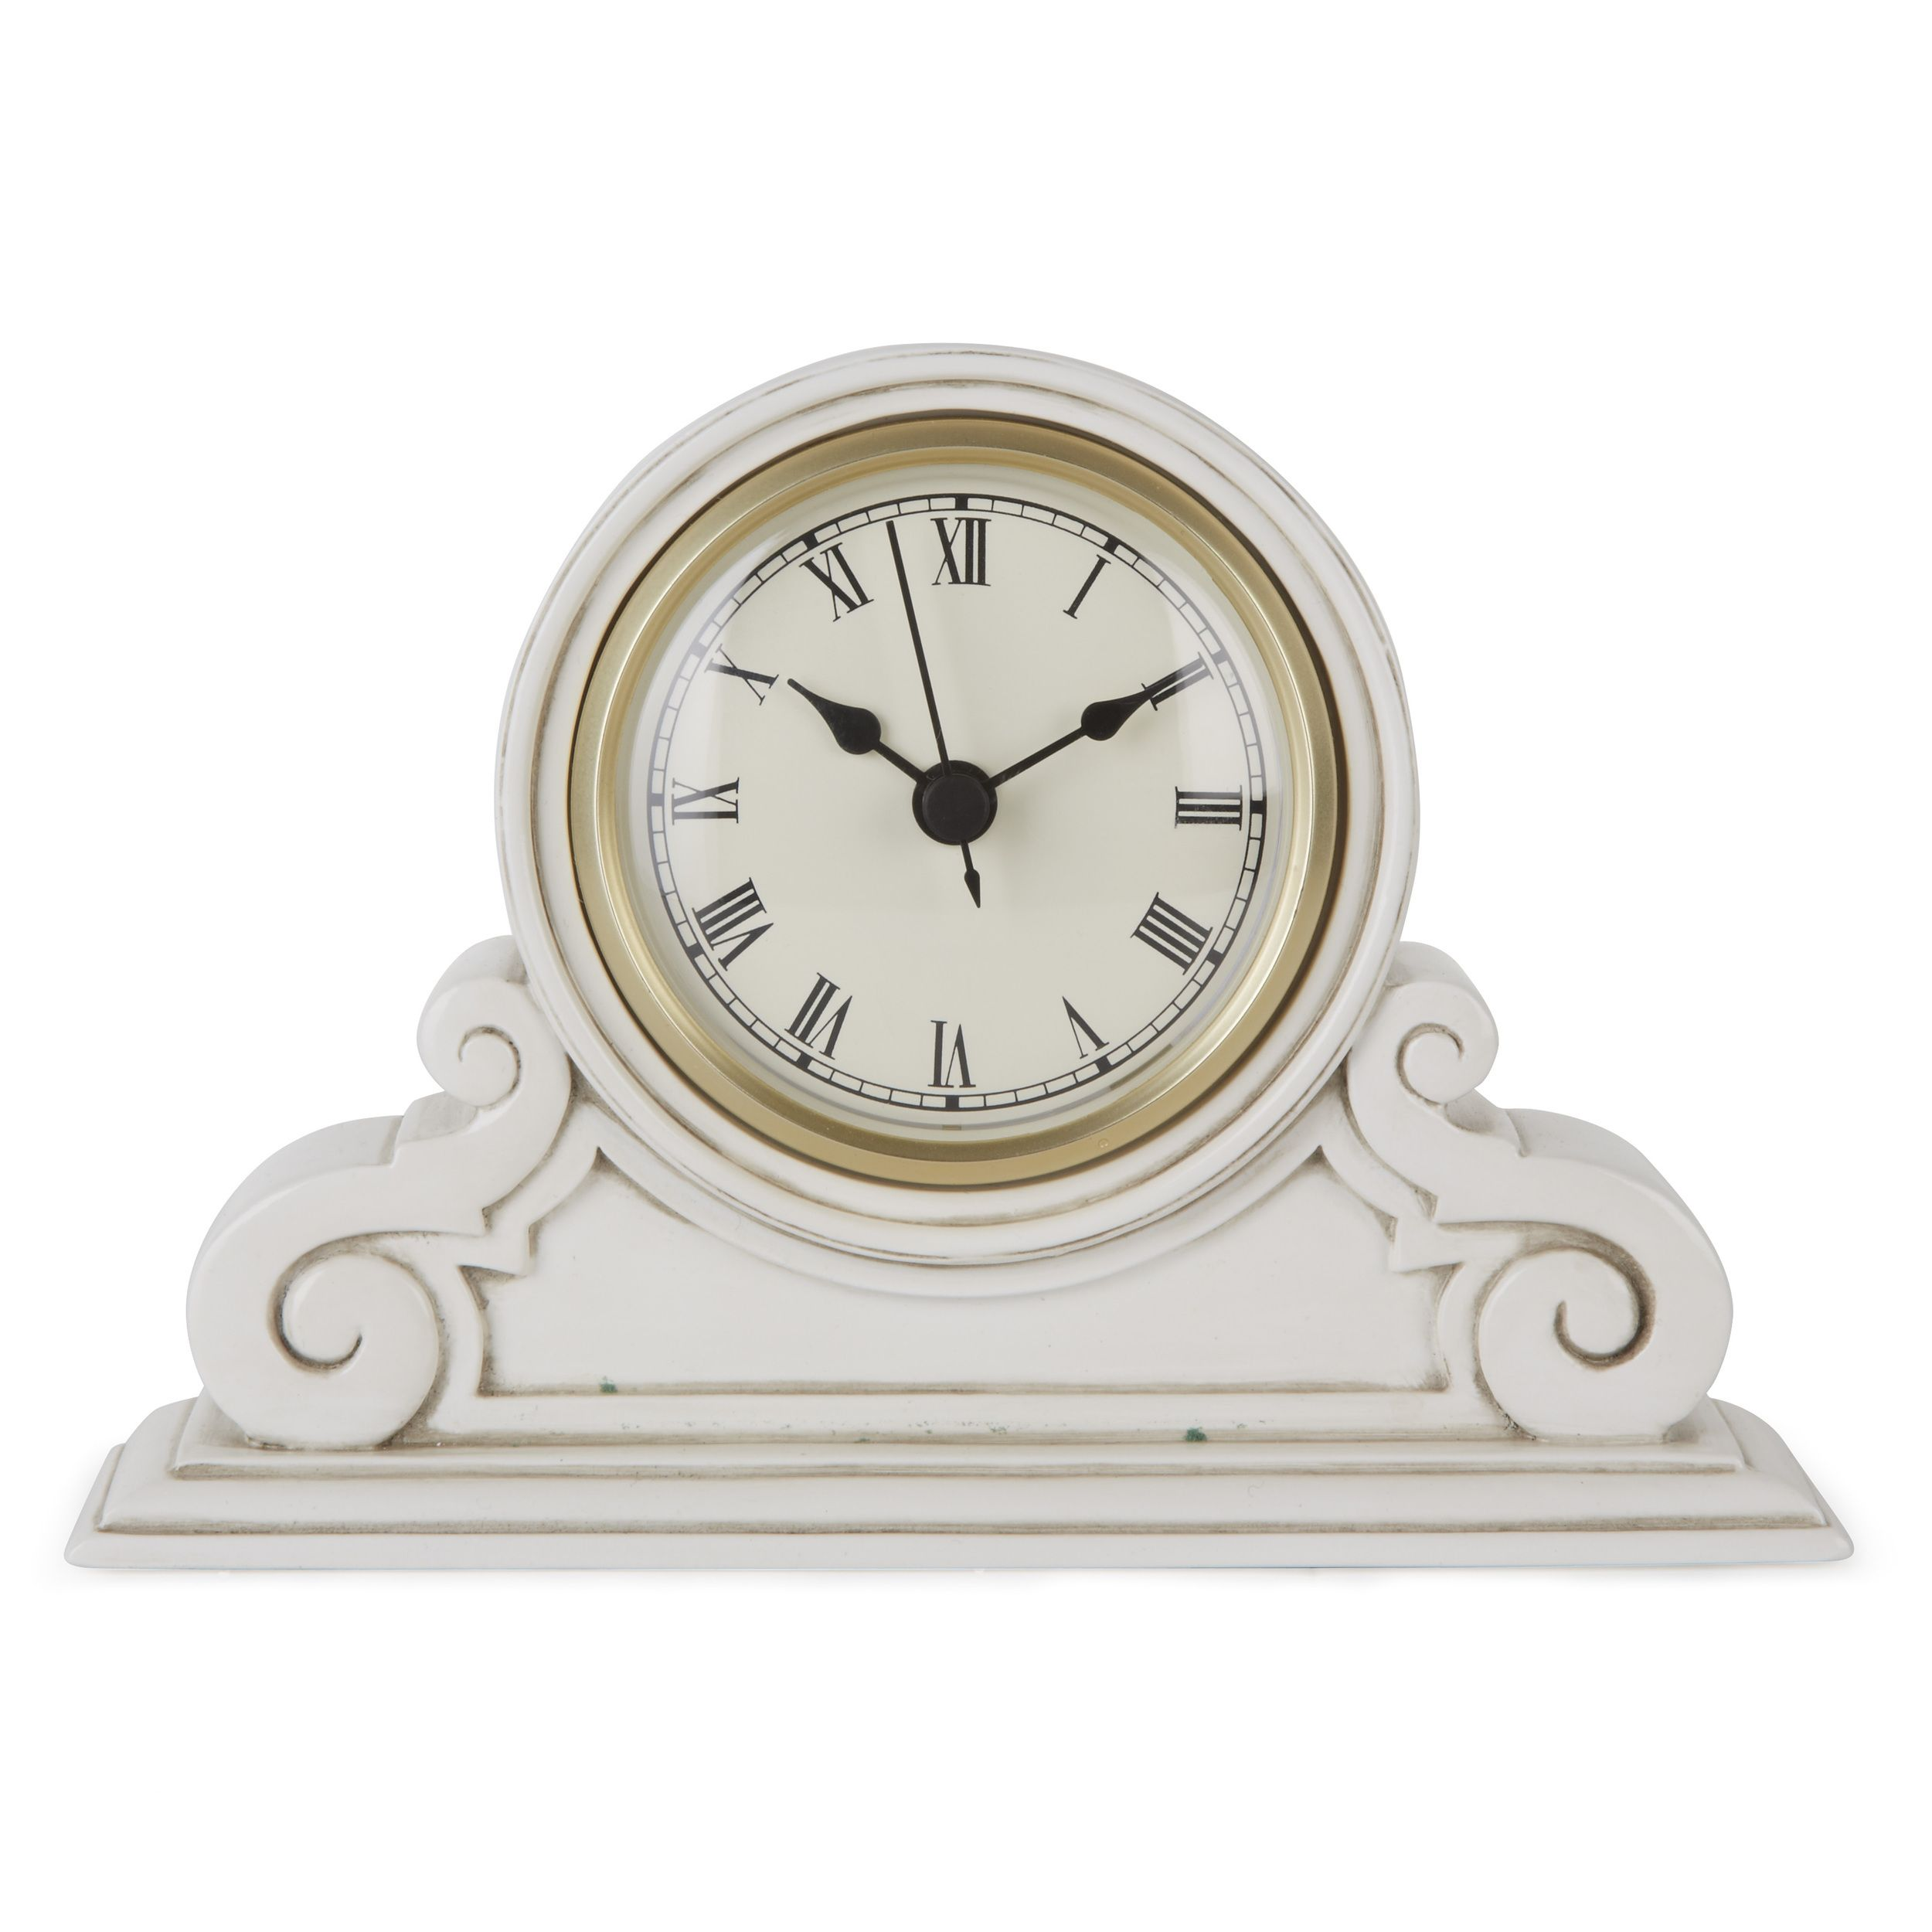 small cream curved mantle clock at laura ashley decor details